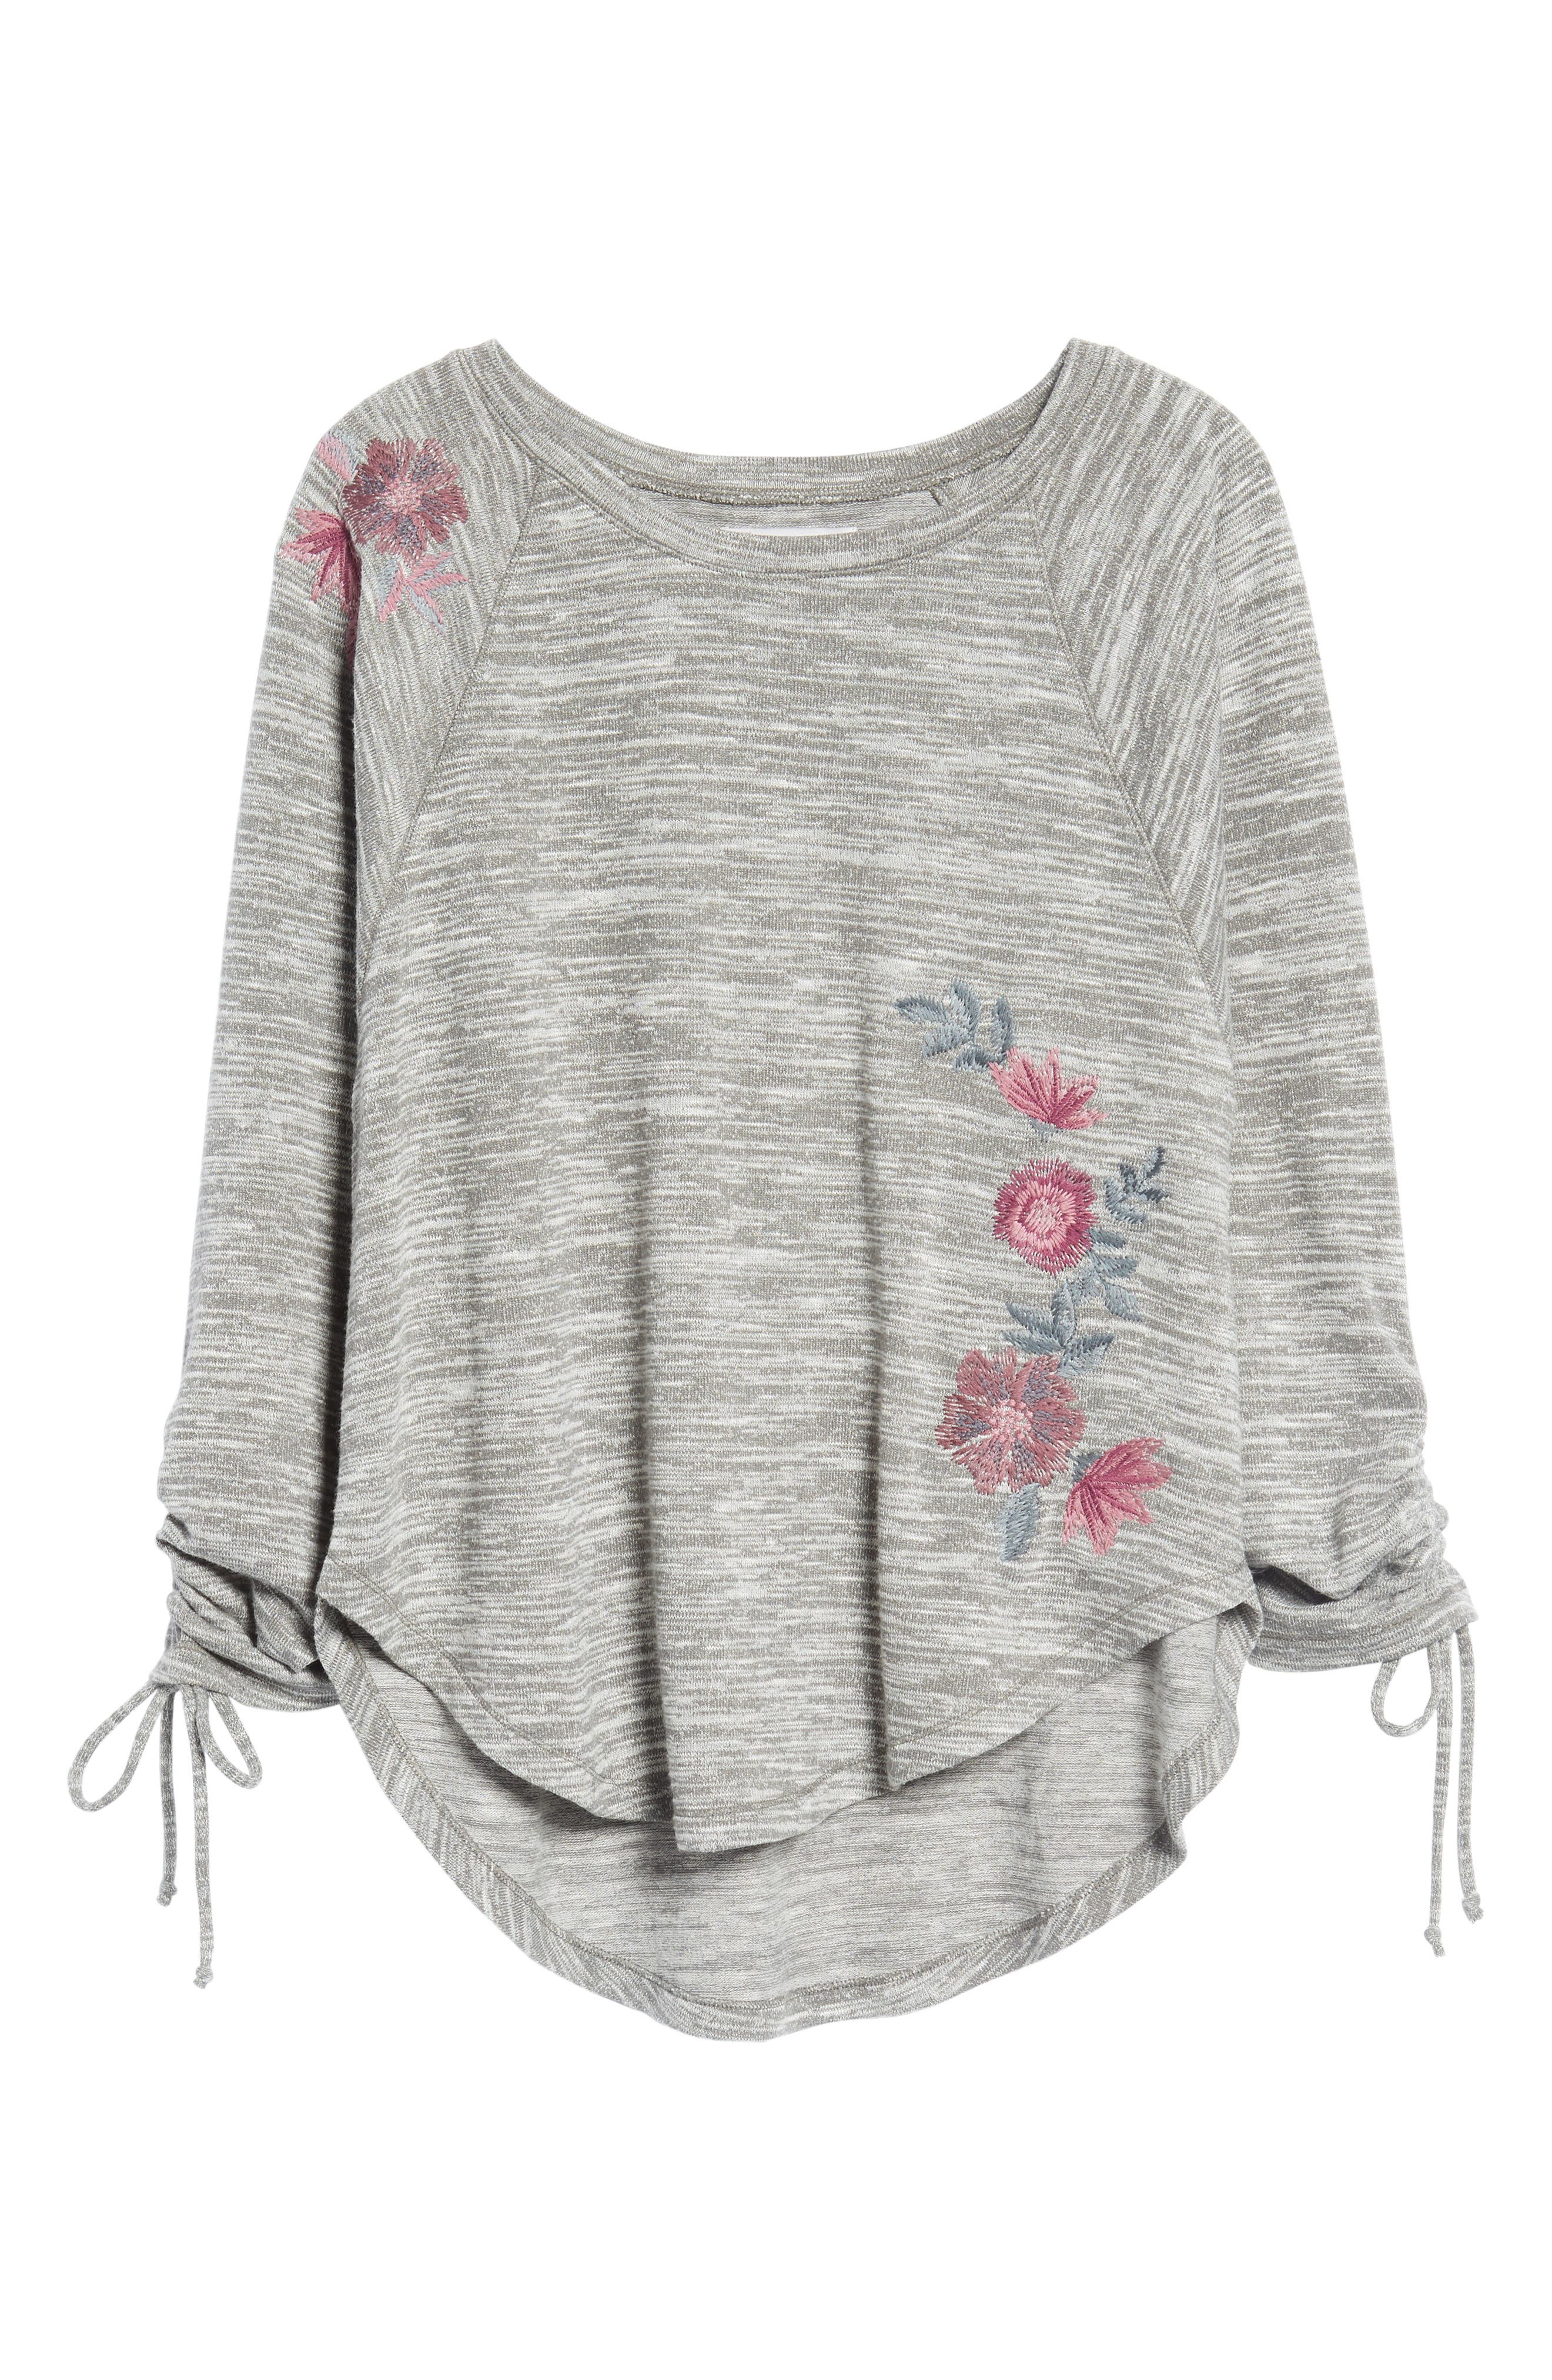 Hacci Embroidered Sweatshirt,                             Alternate thumbnail 6, color,                             022